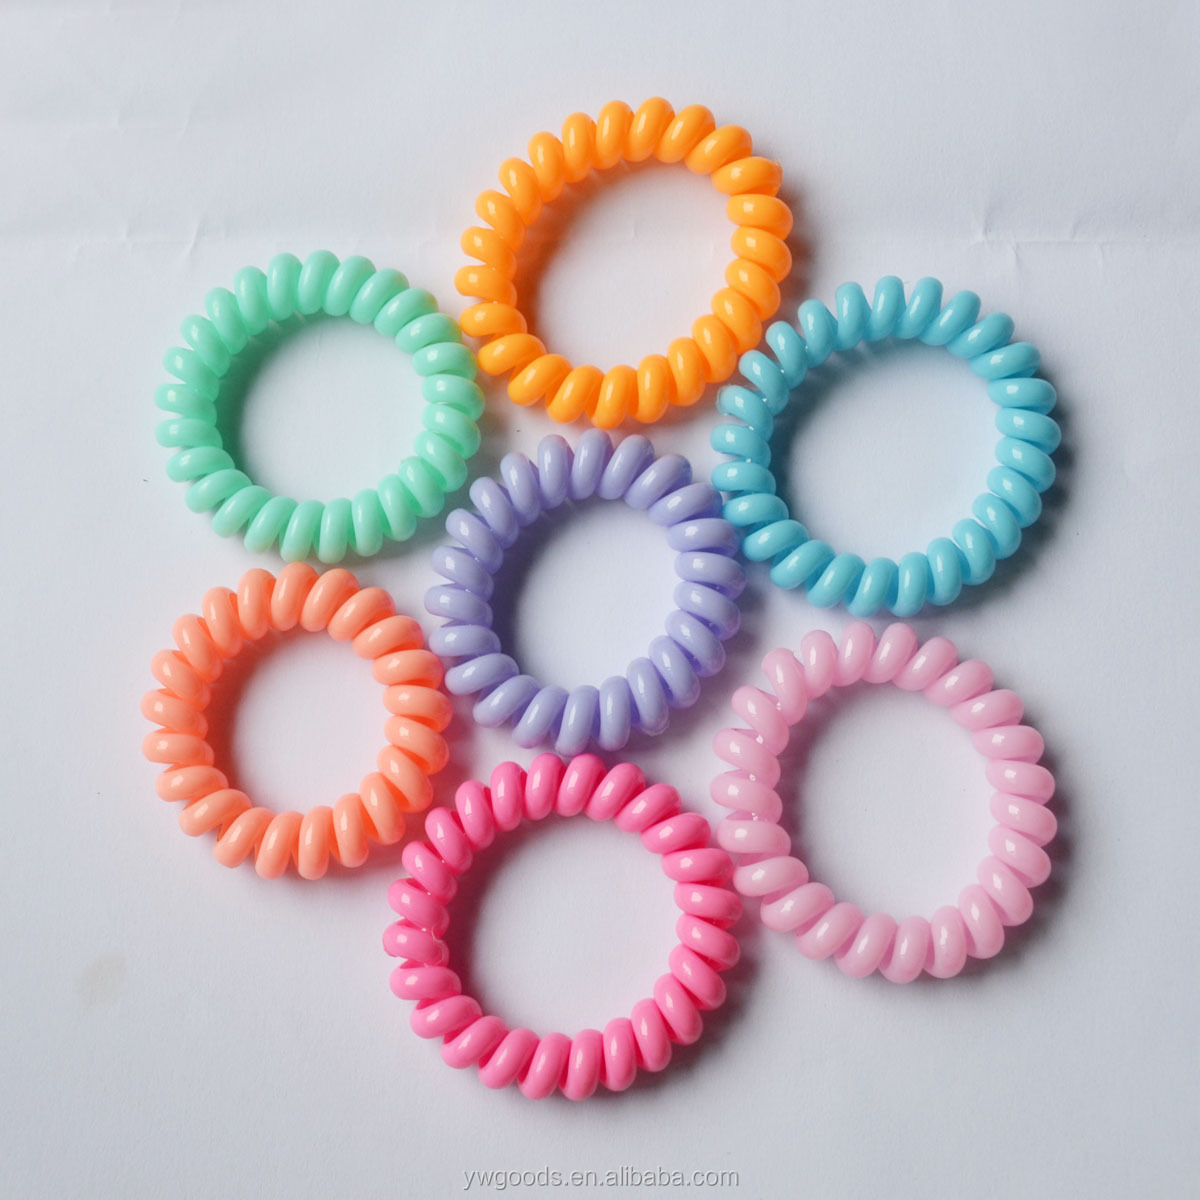 Fashion Elastic Hair Bands Cute Telephone Line Shaped Hair Ties Translucent  Plastic spiral hair ties eed61195f79